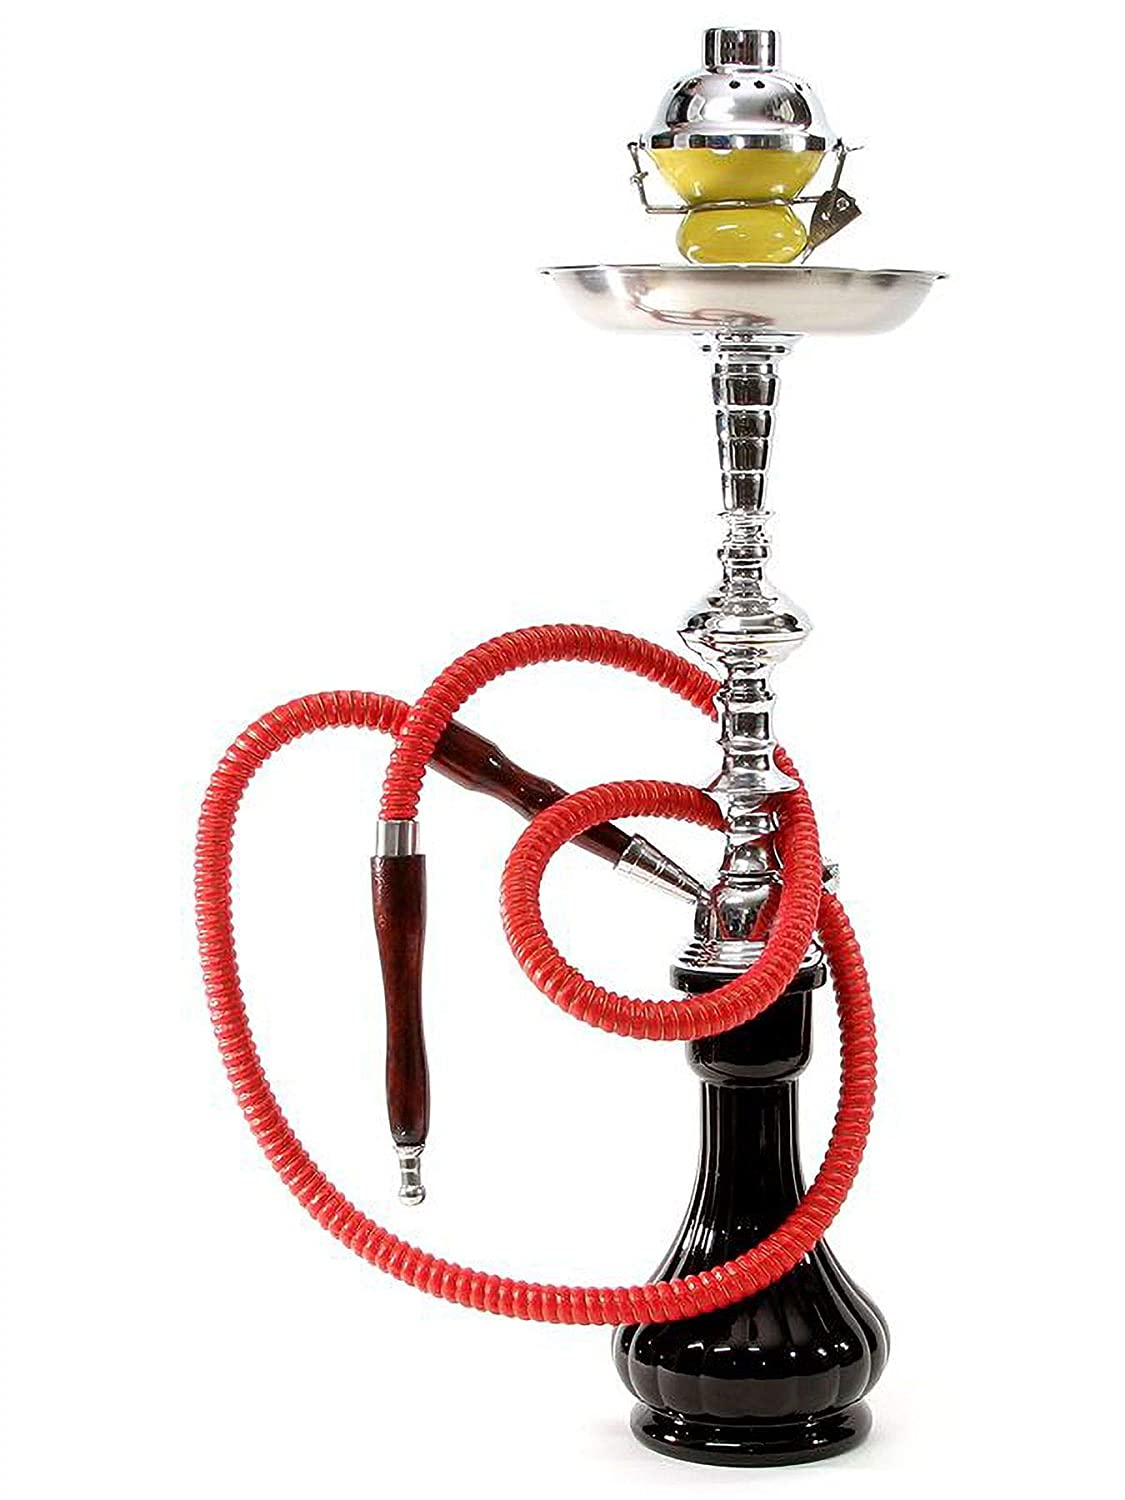 CRAZY SALE clearance sale black hookah online water vase + pipes shisha bar